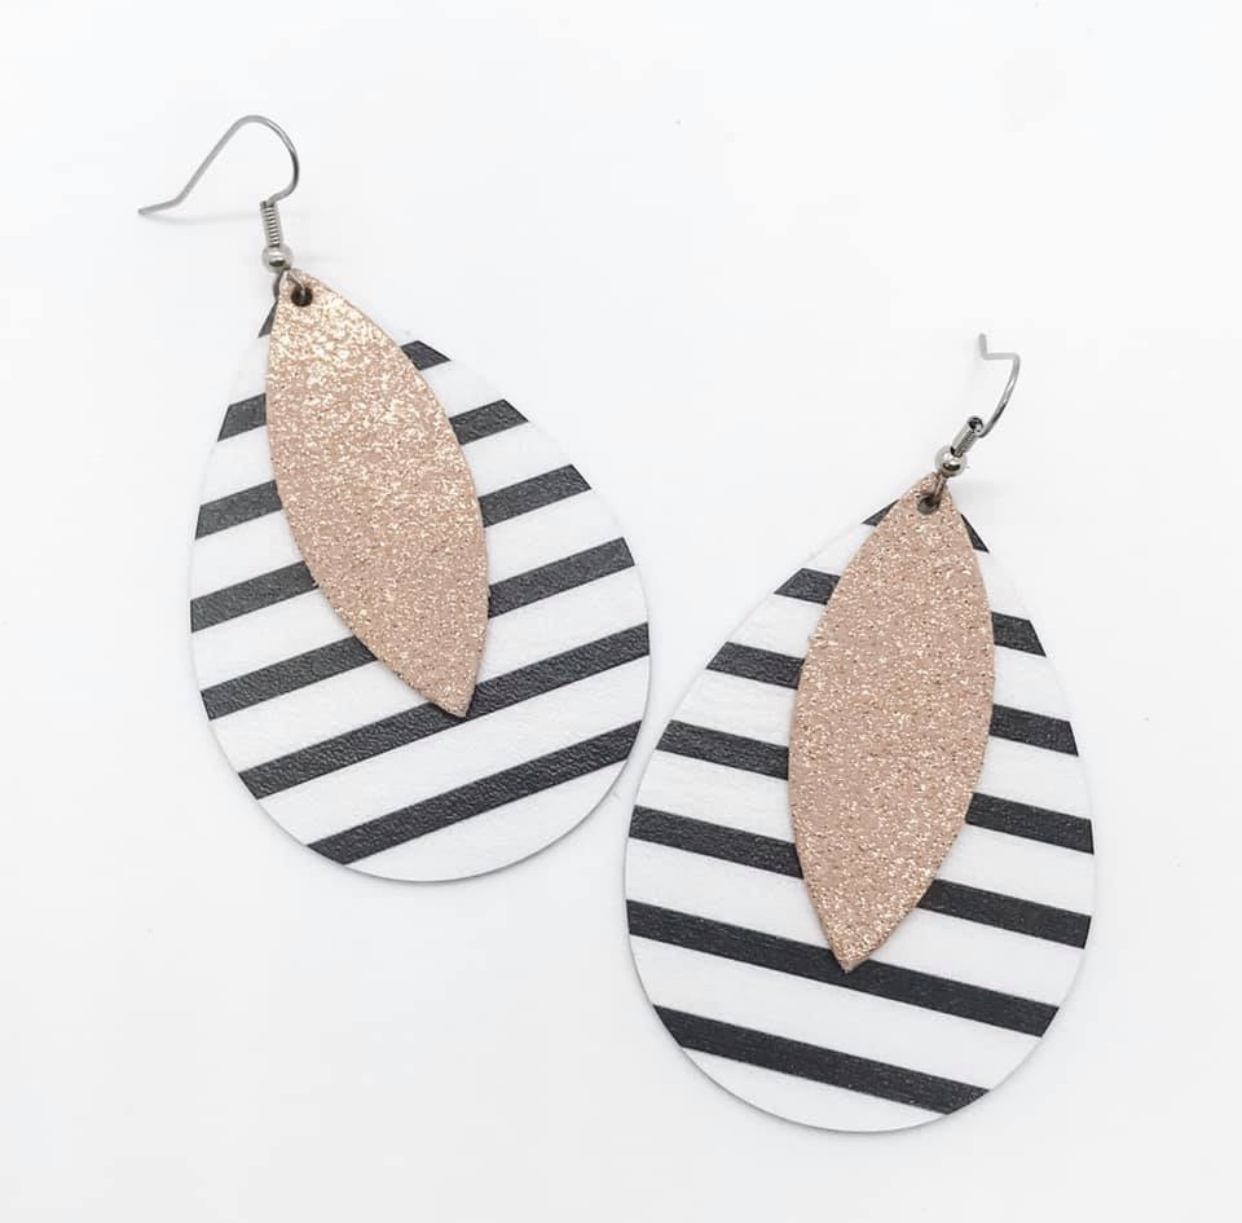 2.5 Inch Teardrop Earrings - Spring Collection (3 Styles)